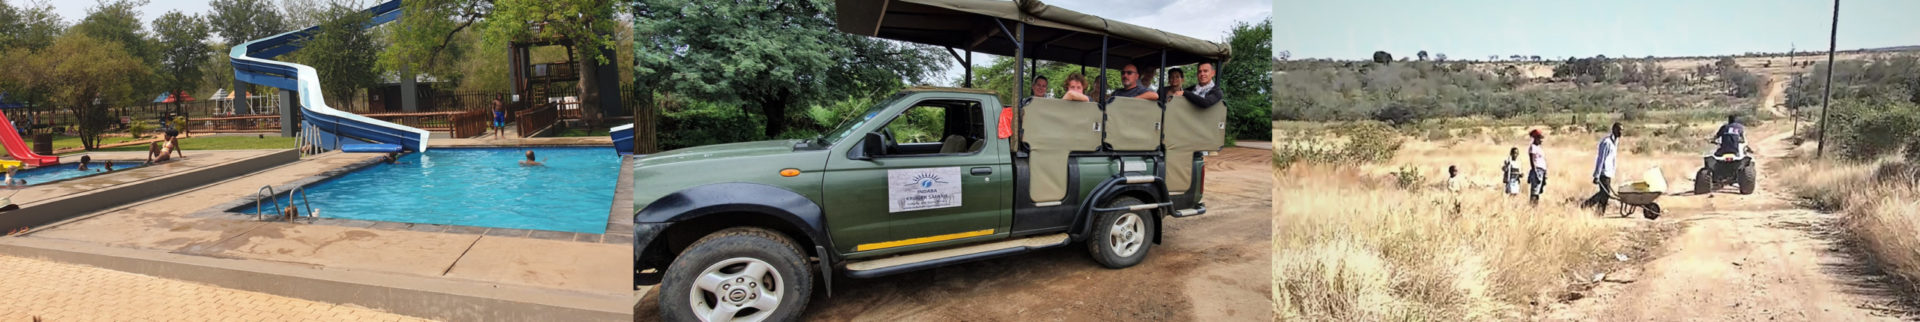 Leadwood Self Catering Guesthouse in Marloth Park, Mpumalanga, South Africa. Marloth Park Activities and things to do in Mpumalanga